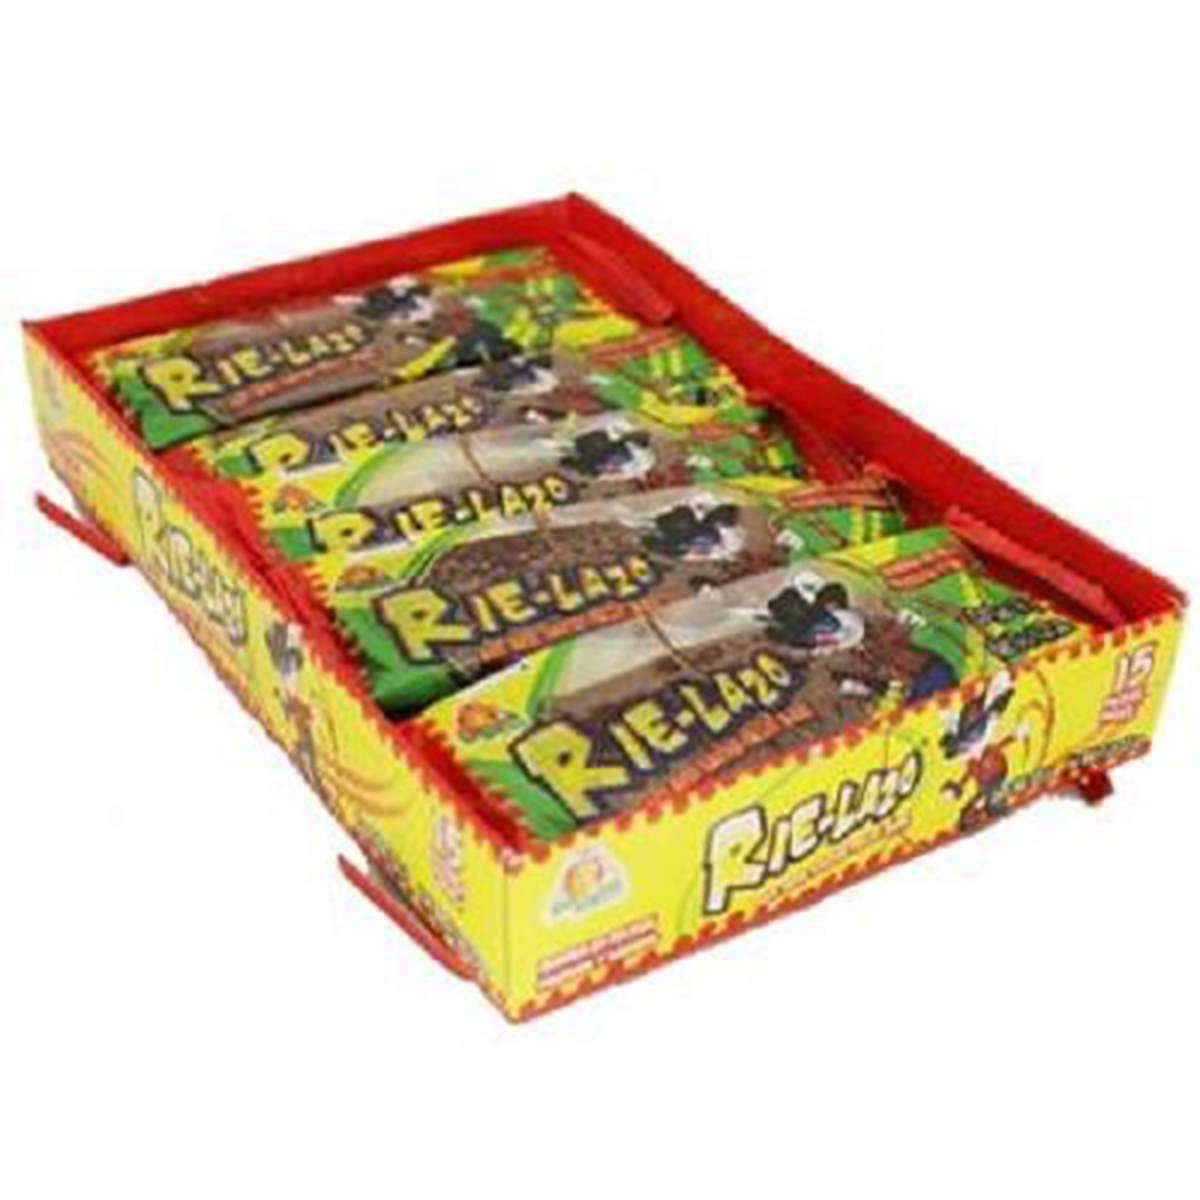 Product Of El Azteca, Rie-Lazo Hot & Salted Fruit Bar, Count 15 - Sugar Candy / Grab Varieties & Flavors